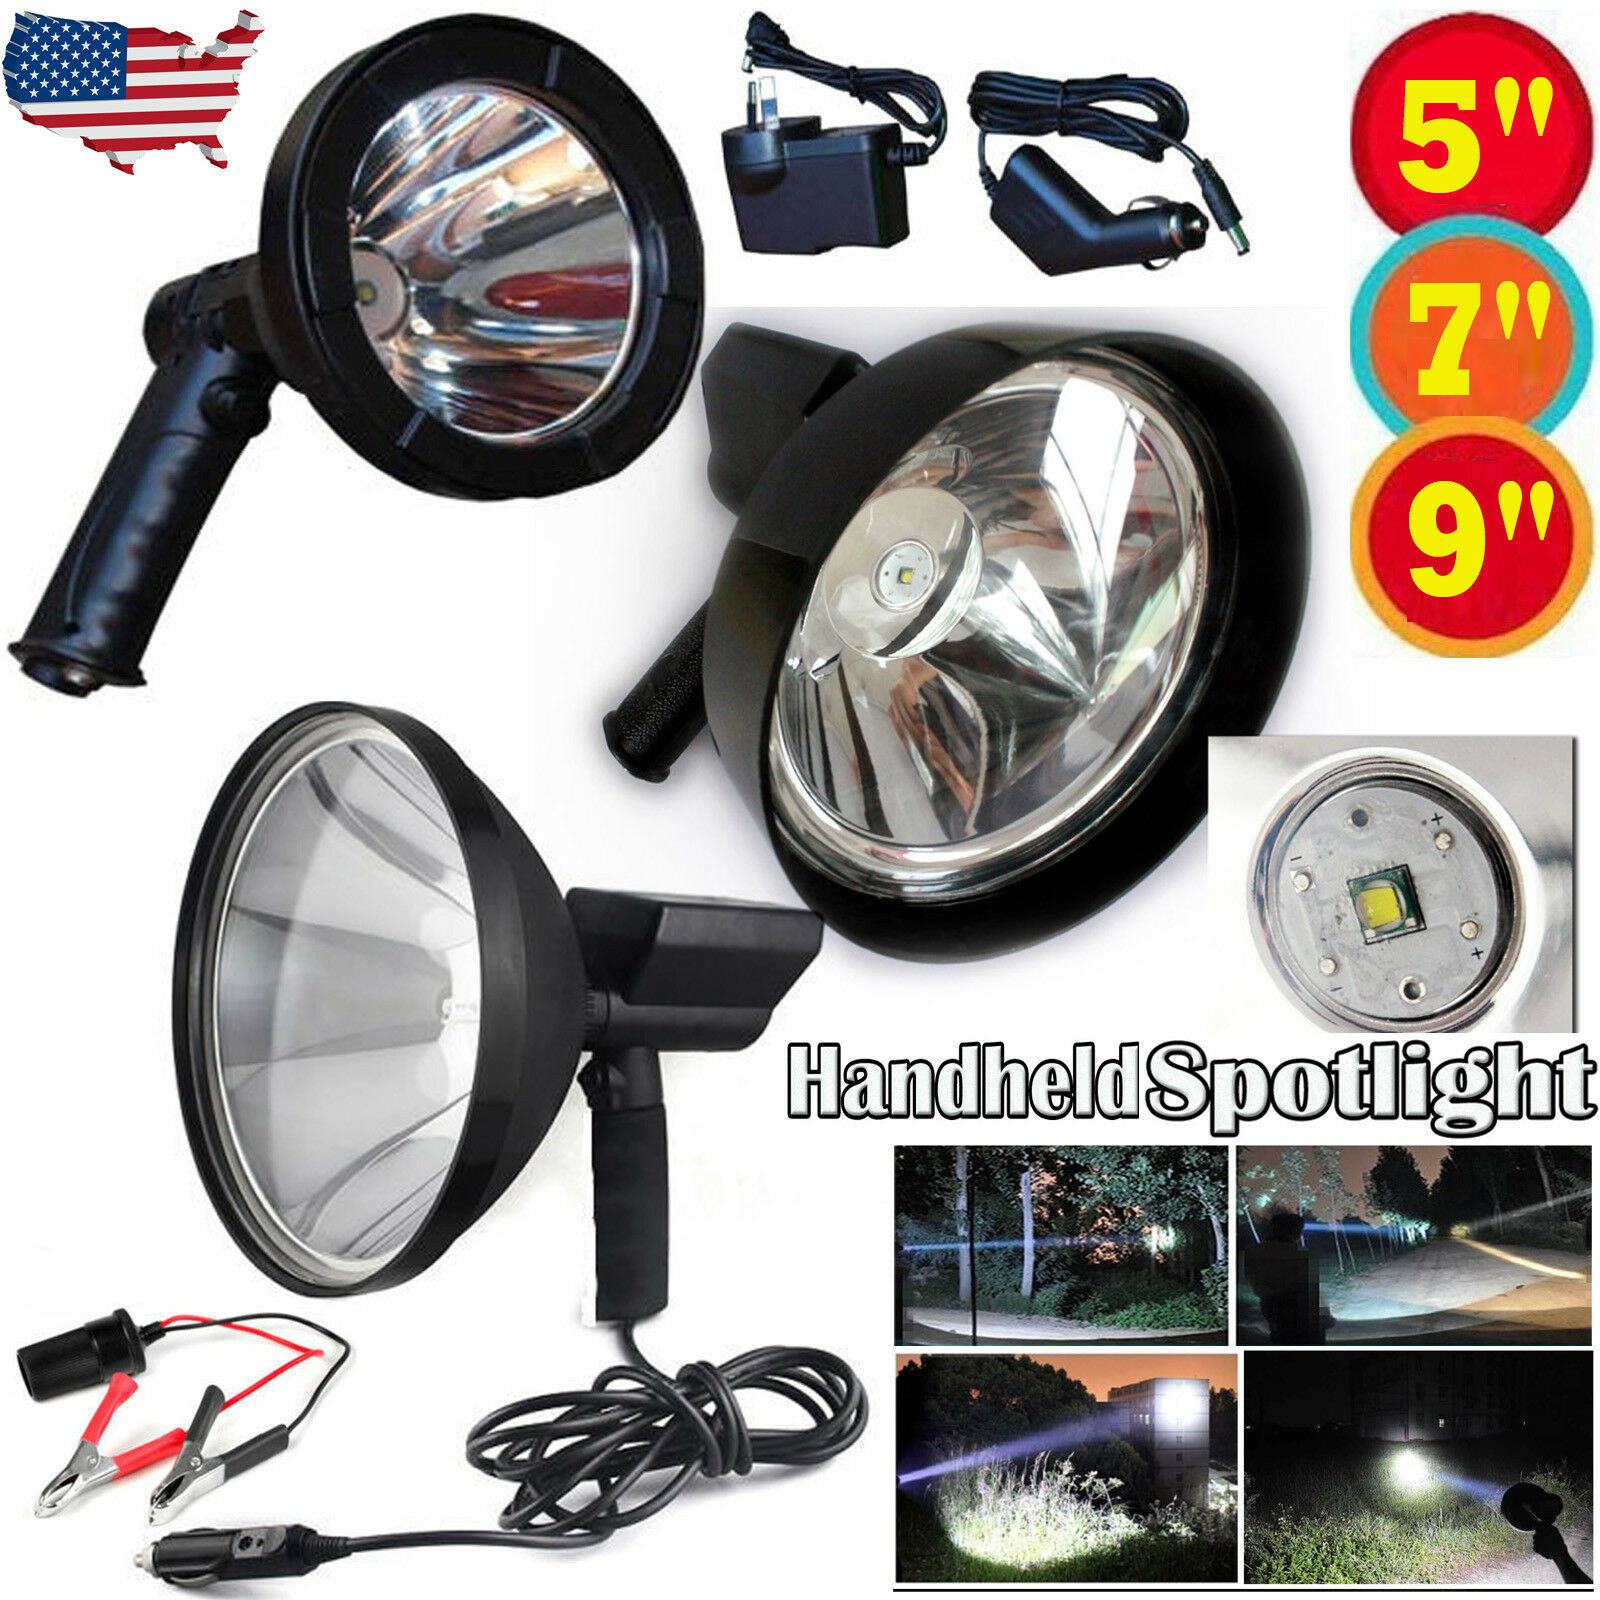 CREE LED 800W Rechargeable Spotlight Hunting Hand Held Torch Spot Light 80000lm